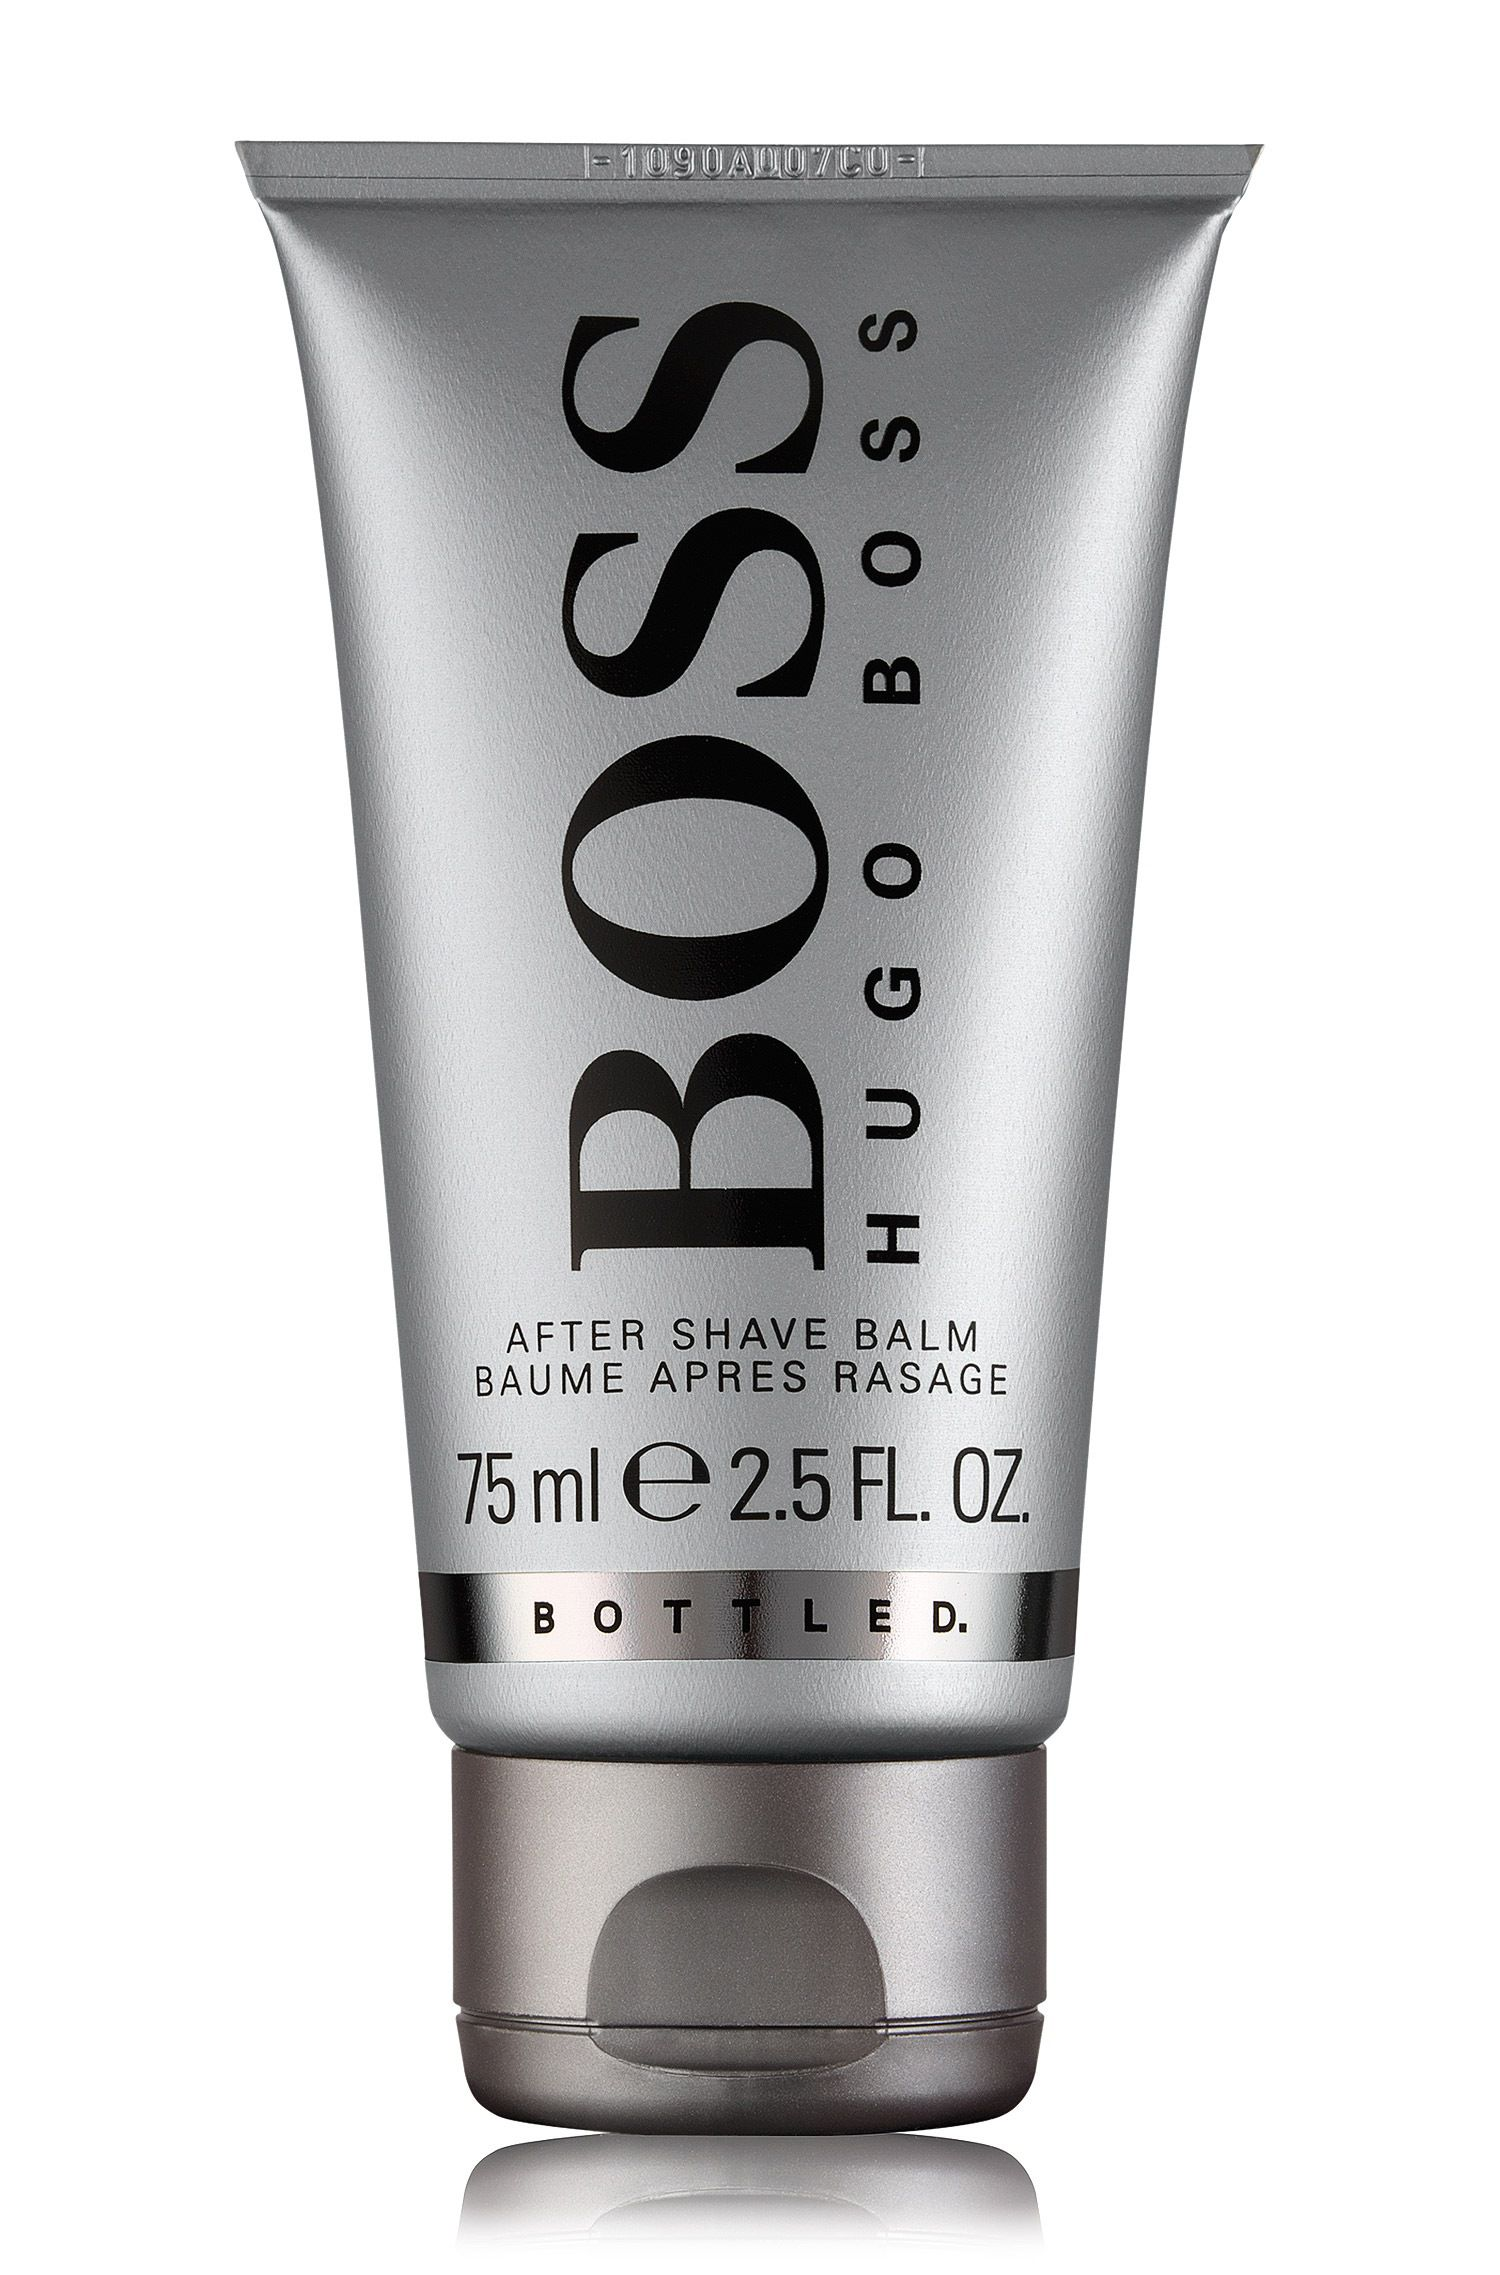 Baume Après-Rasage BOSS Bottled, 75 ml, Assorted-Pre-Pack